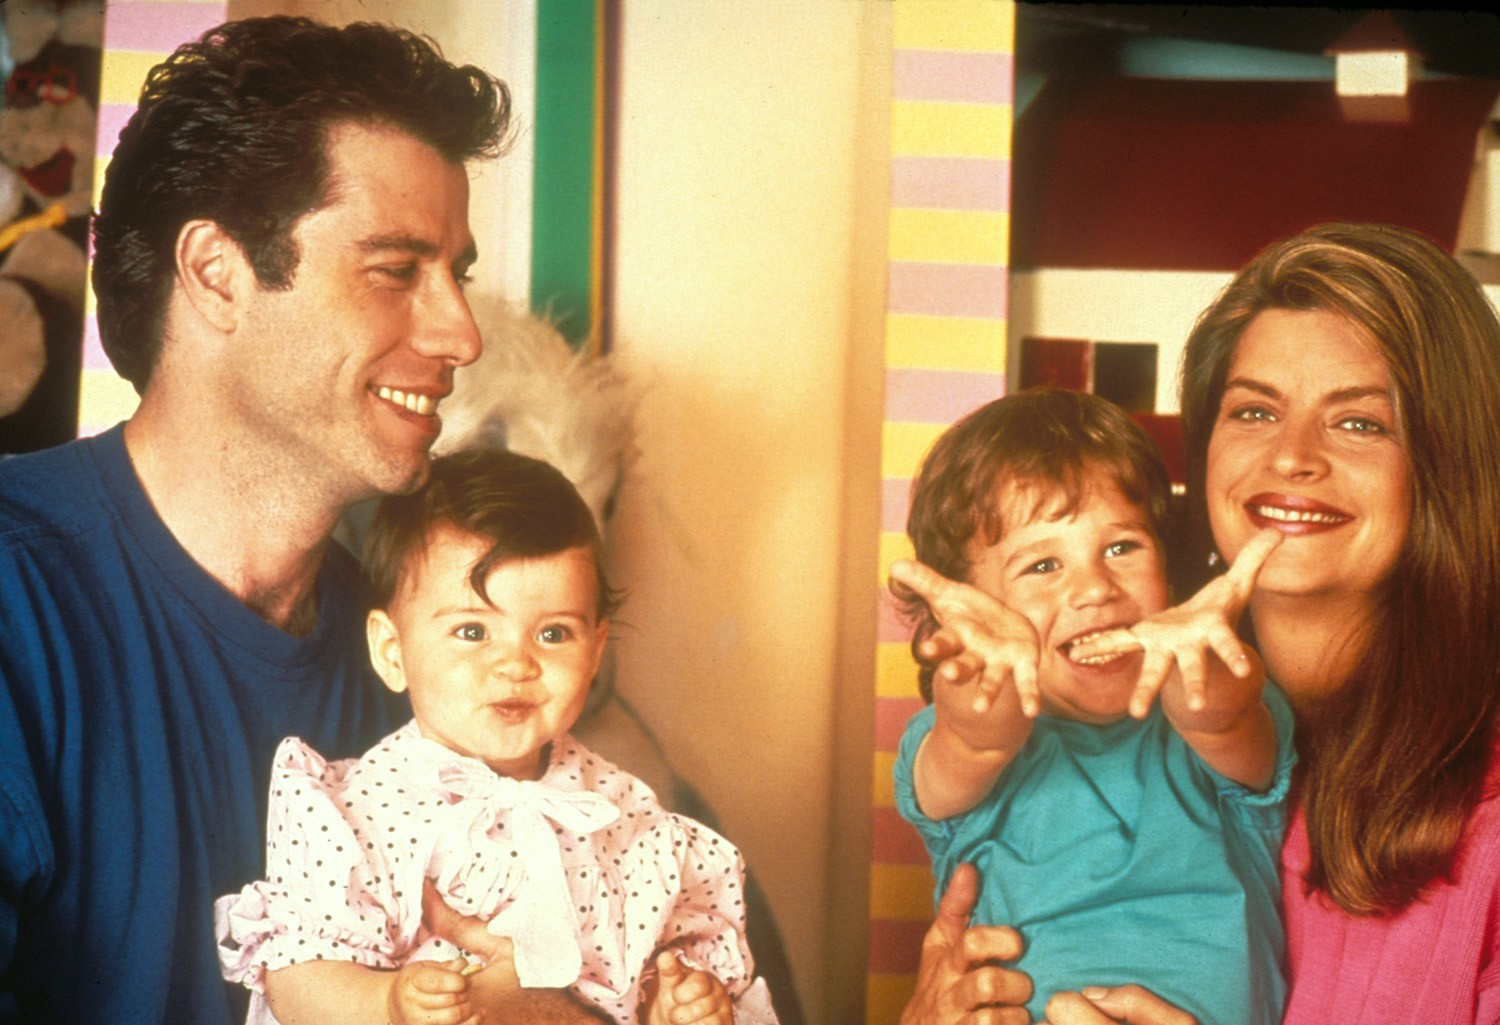 Look_Whos_Talking_Too-kirstie-alley-john-travolta